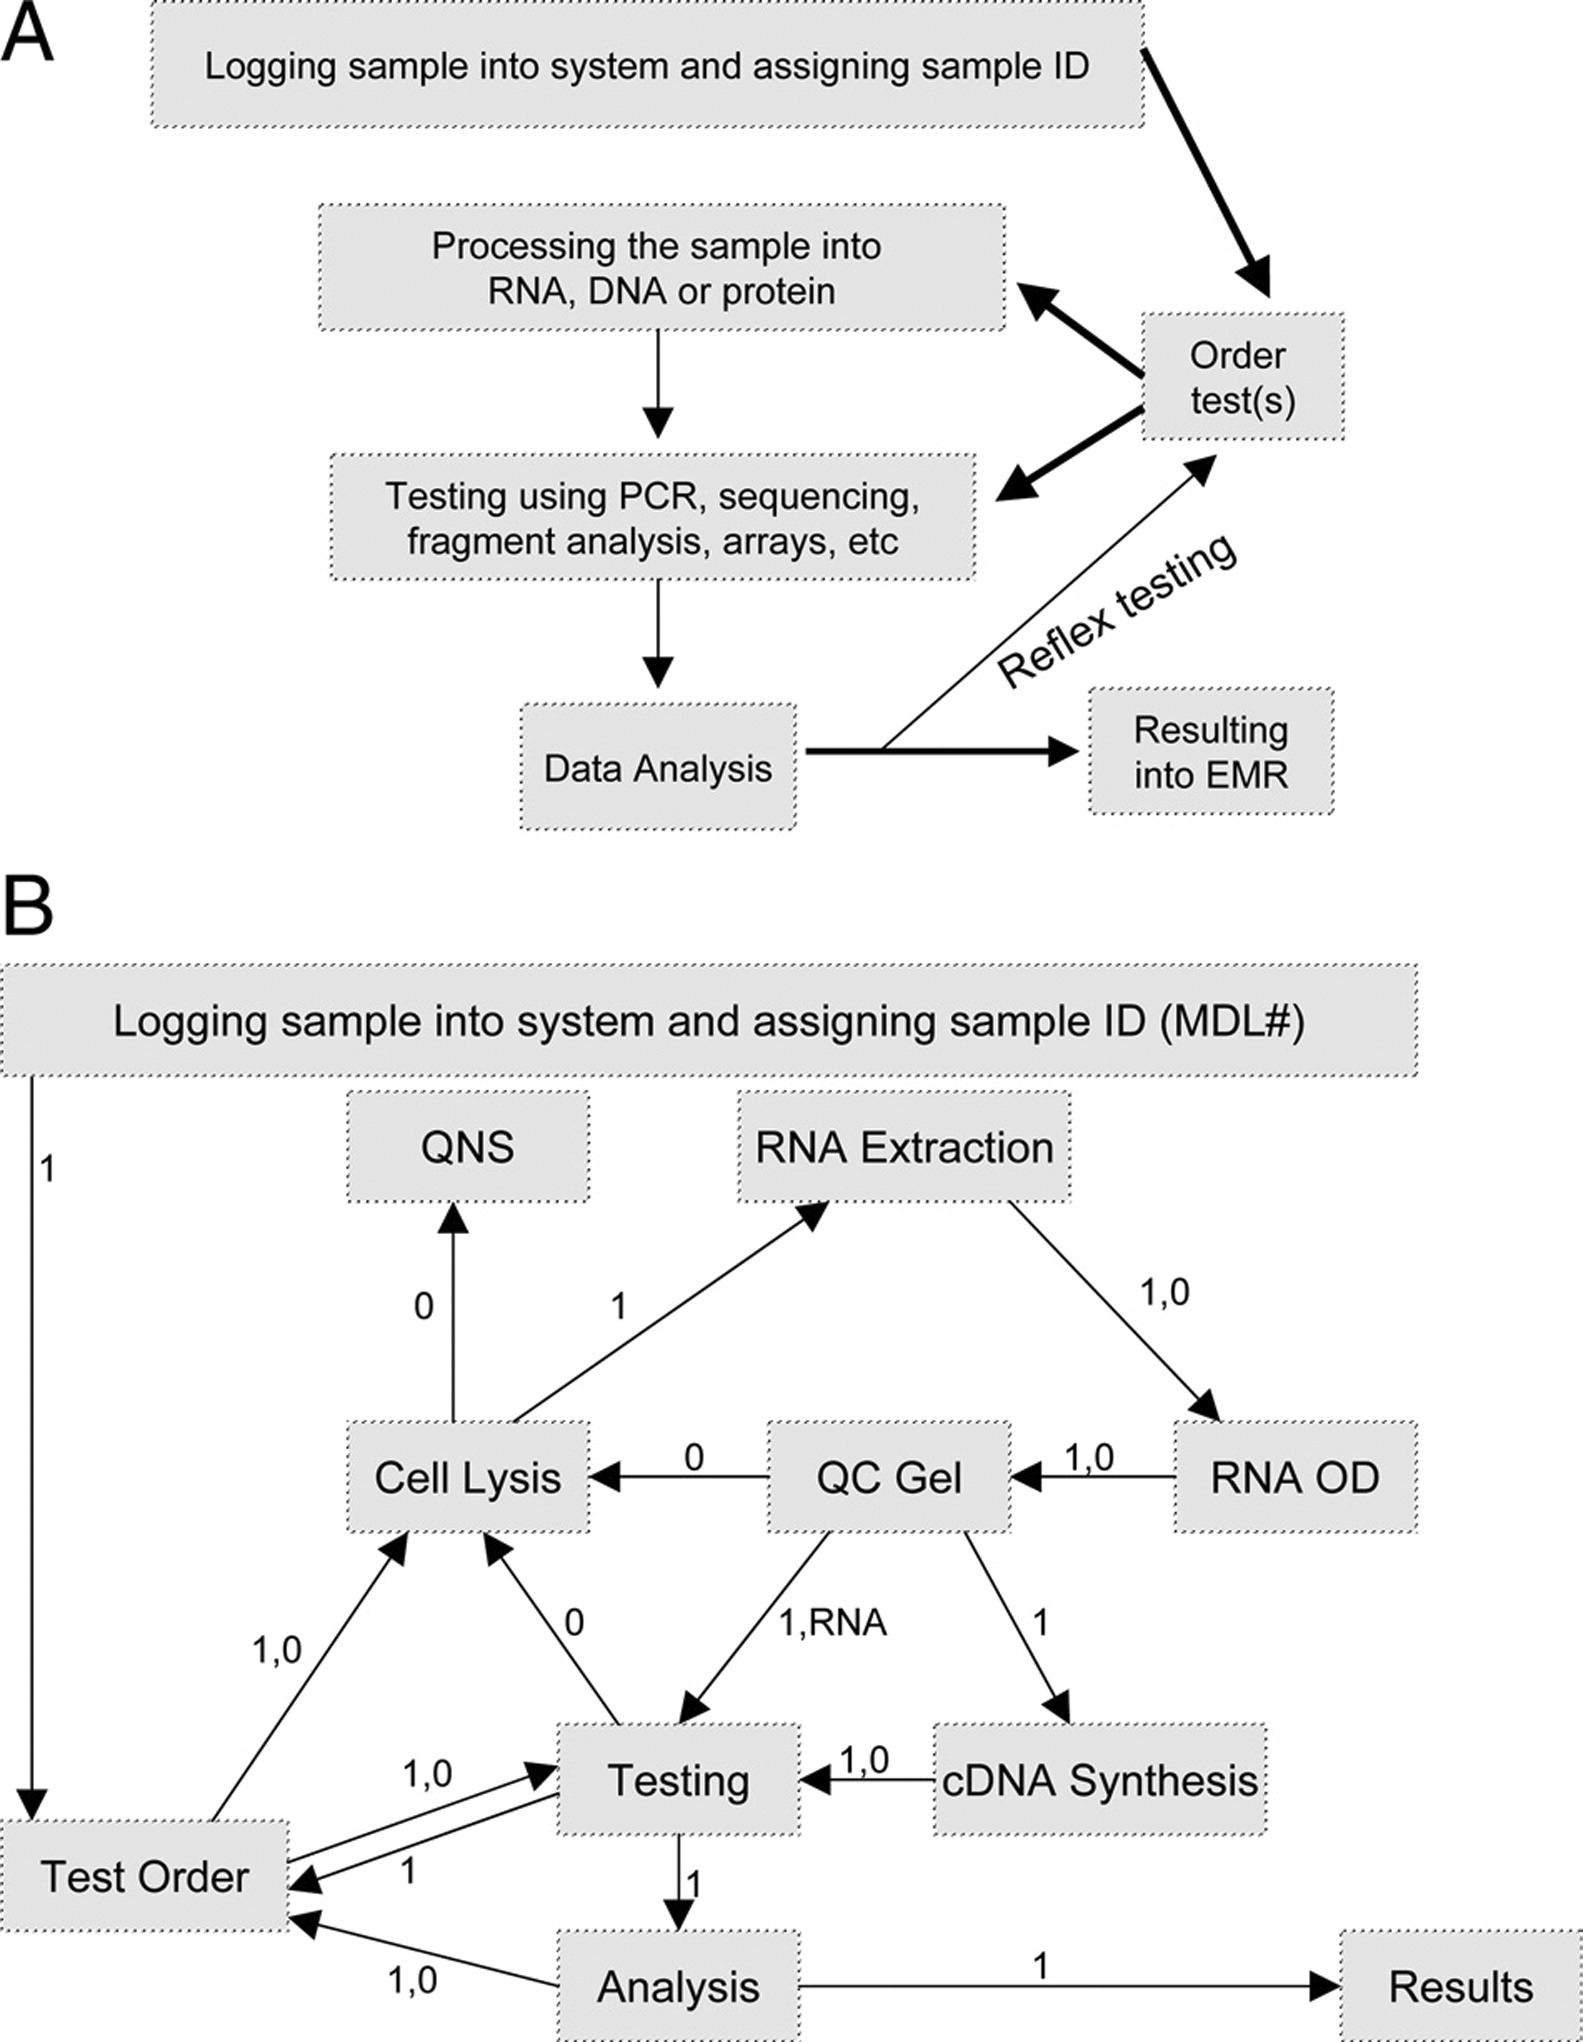 modeling complex workflow in molecular diagnostics the journal of